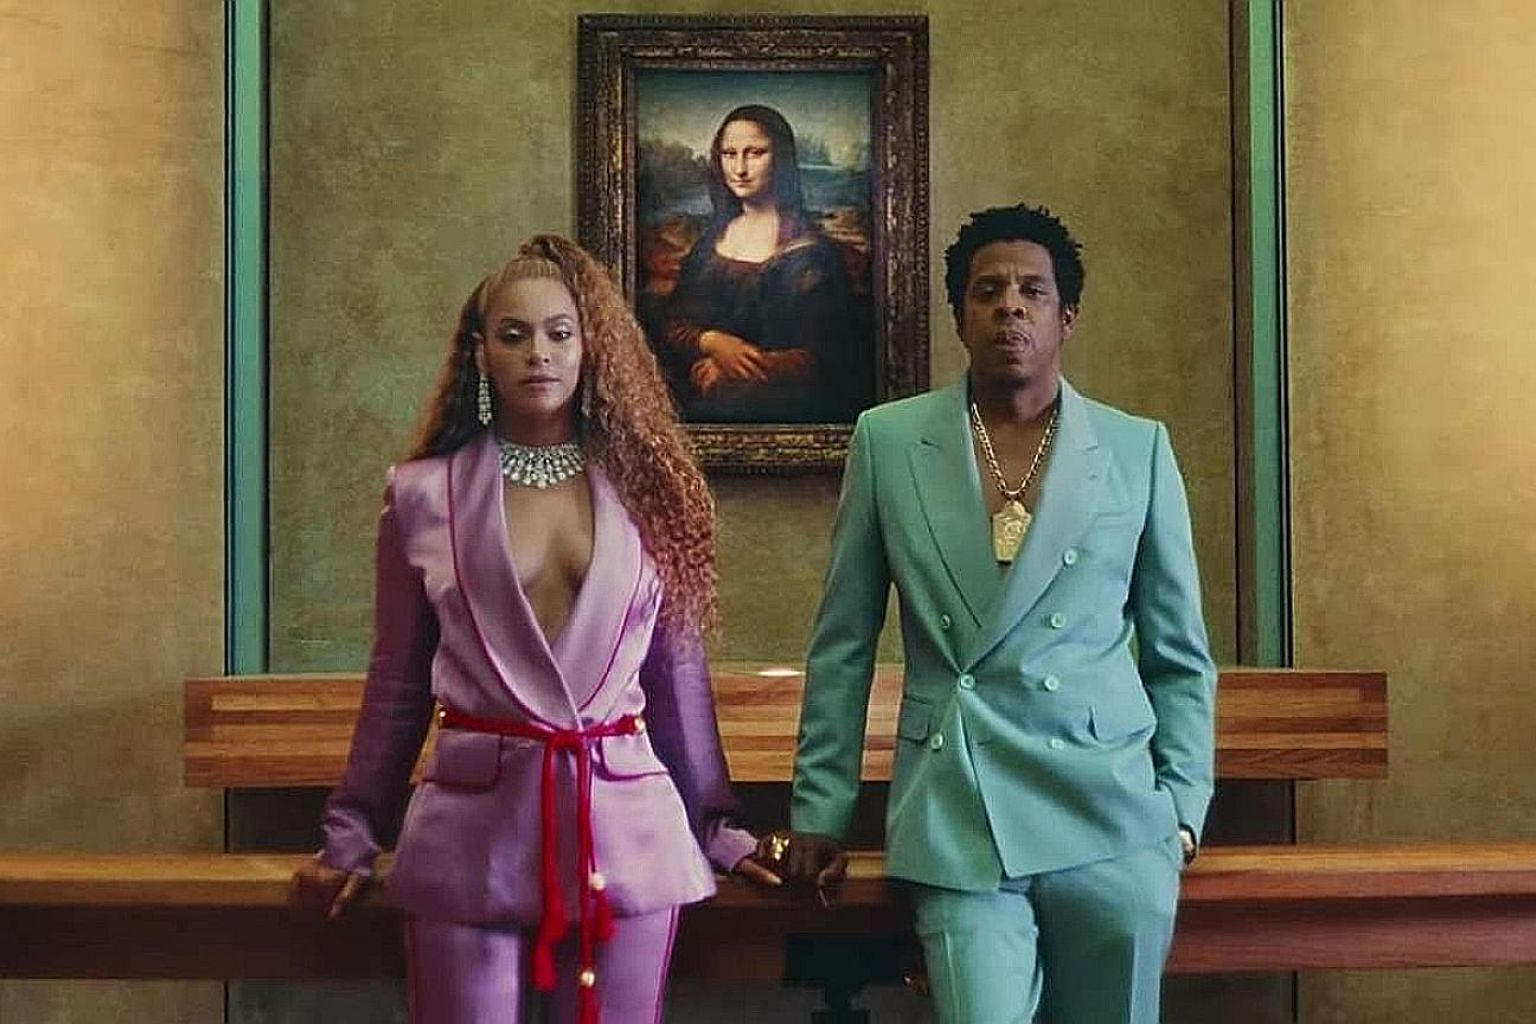 Hip-hop royalty Beyonce and Jay-Z seize control of the narrative of their lives with their joint album.